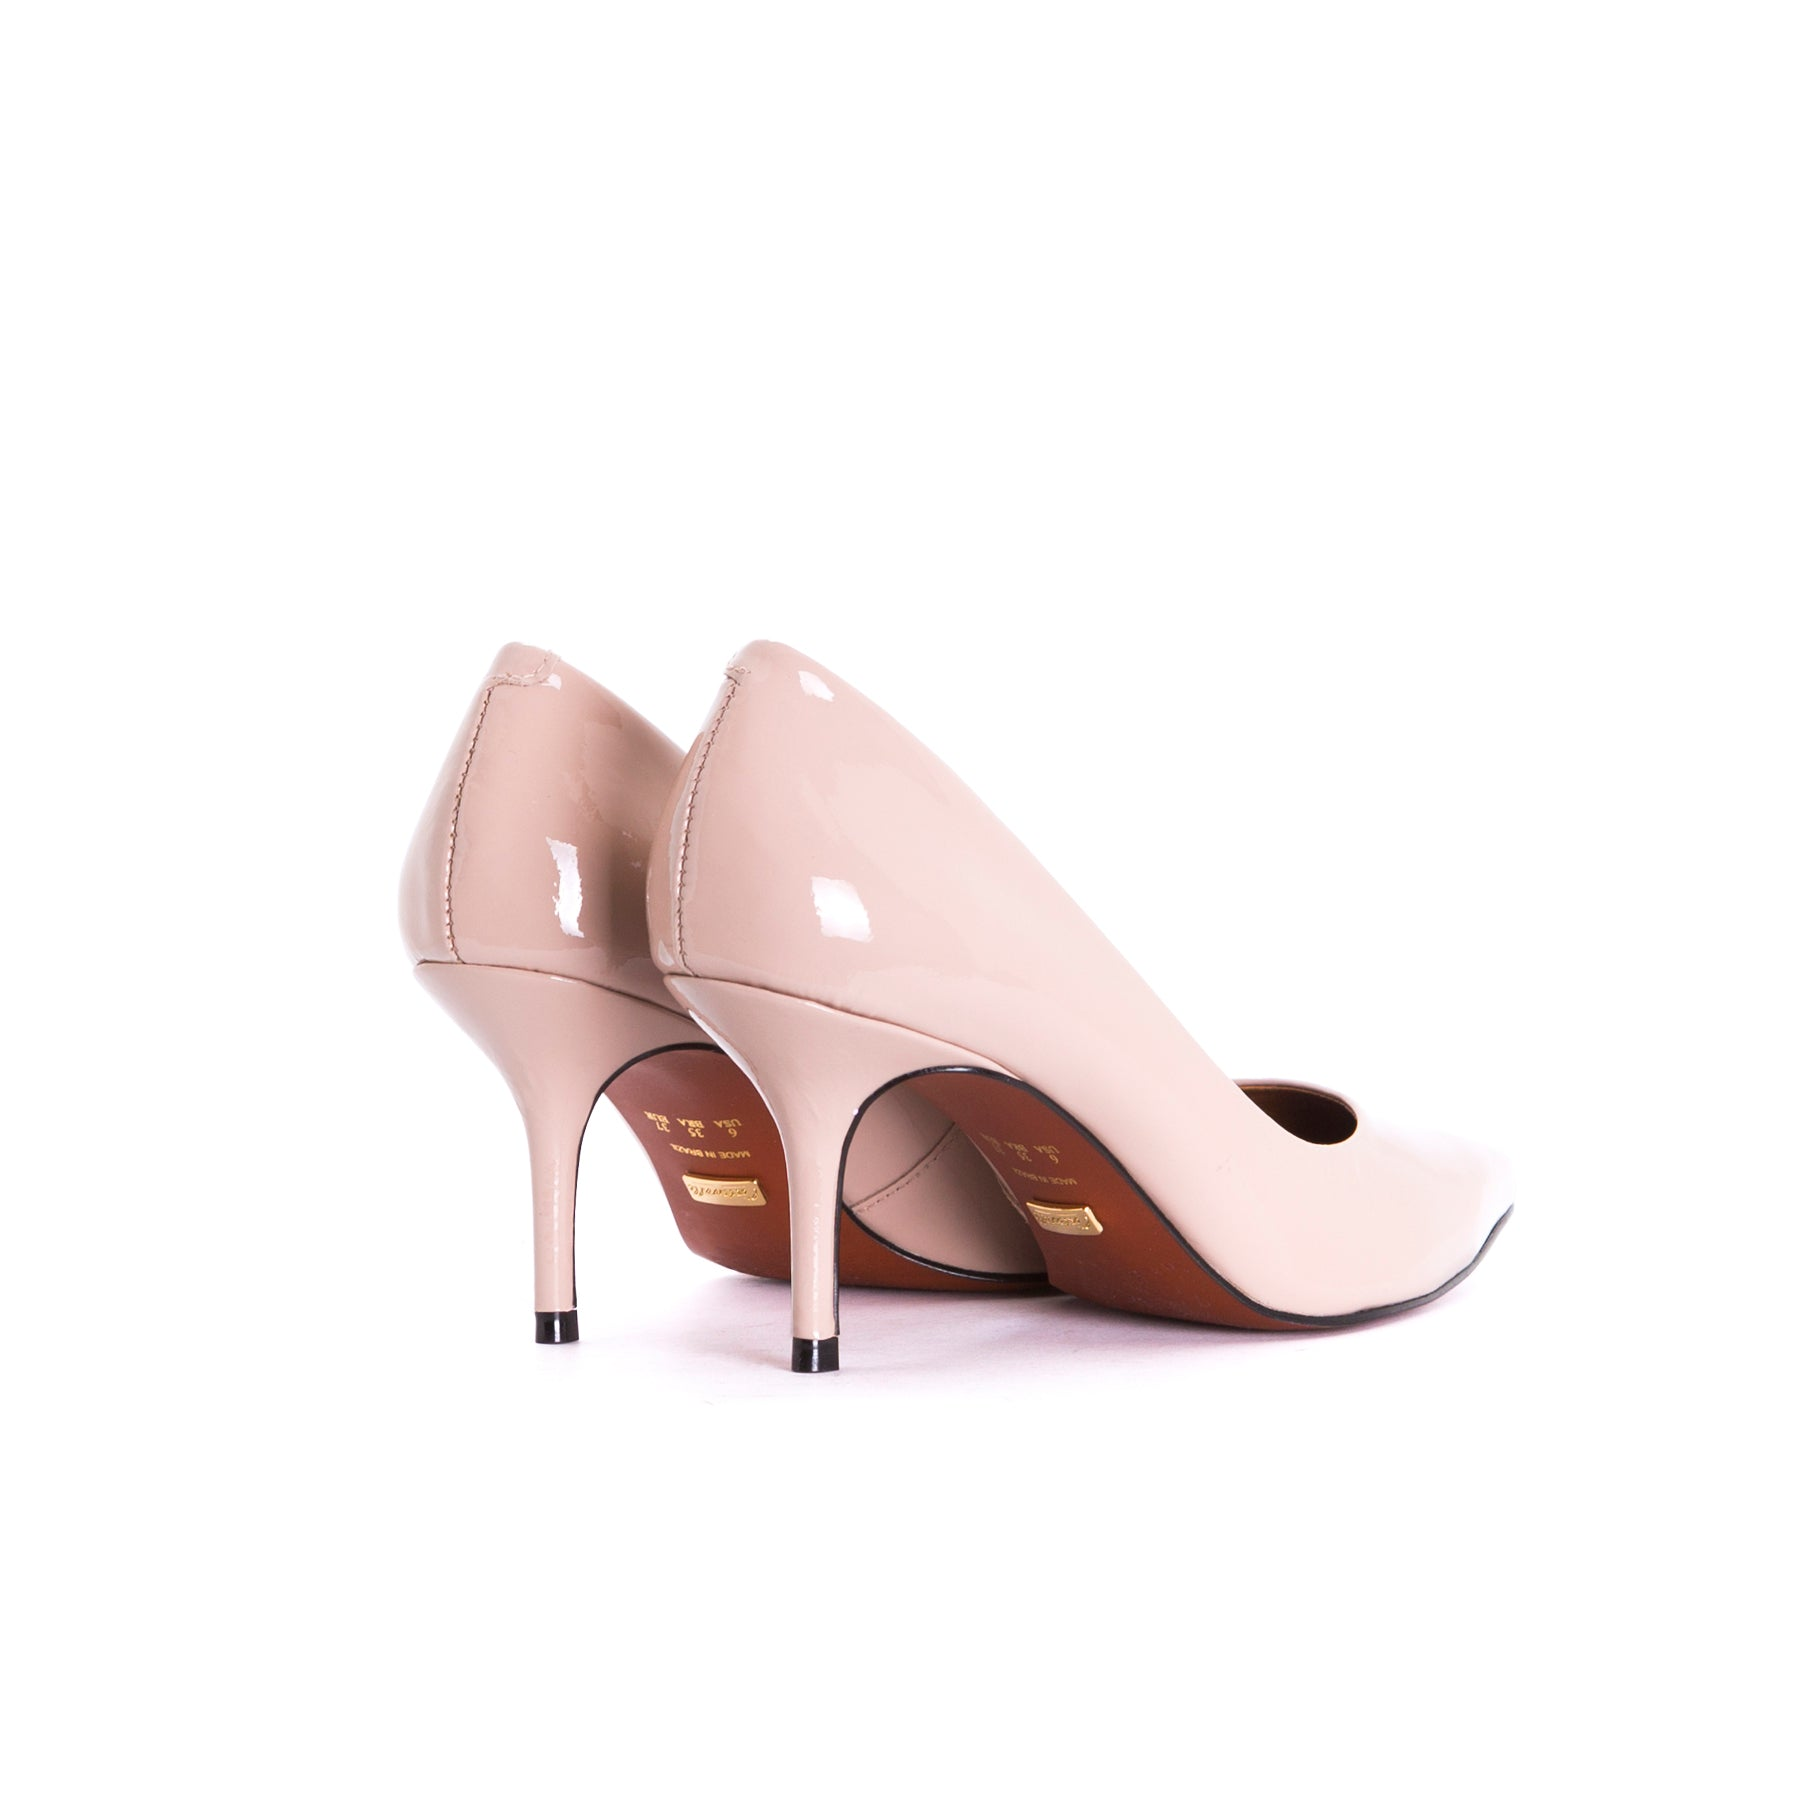 Officia Nude Patent Pumps